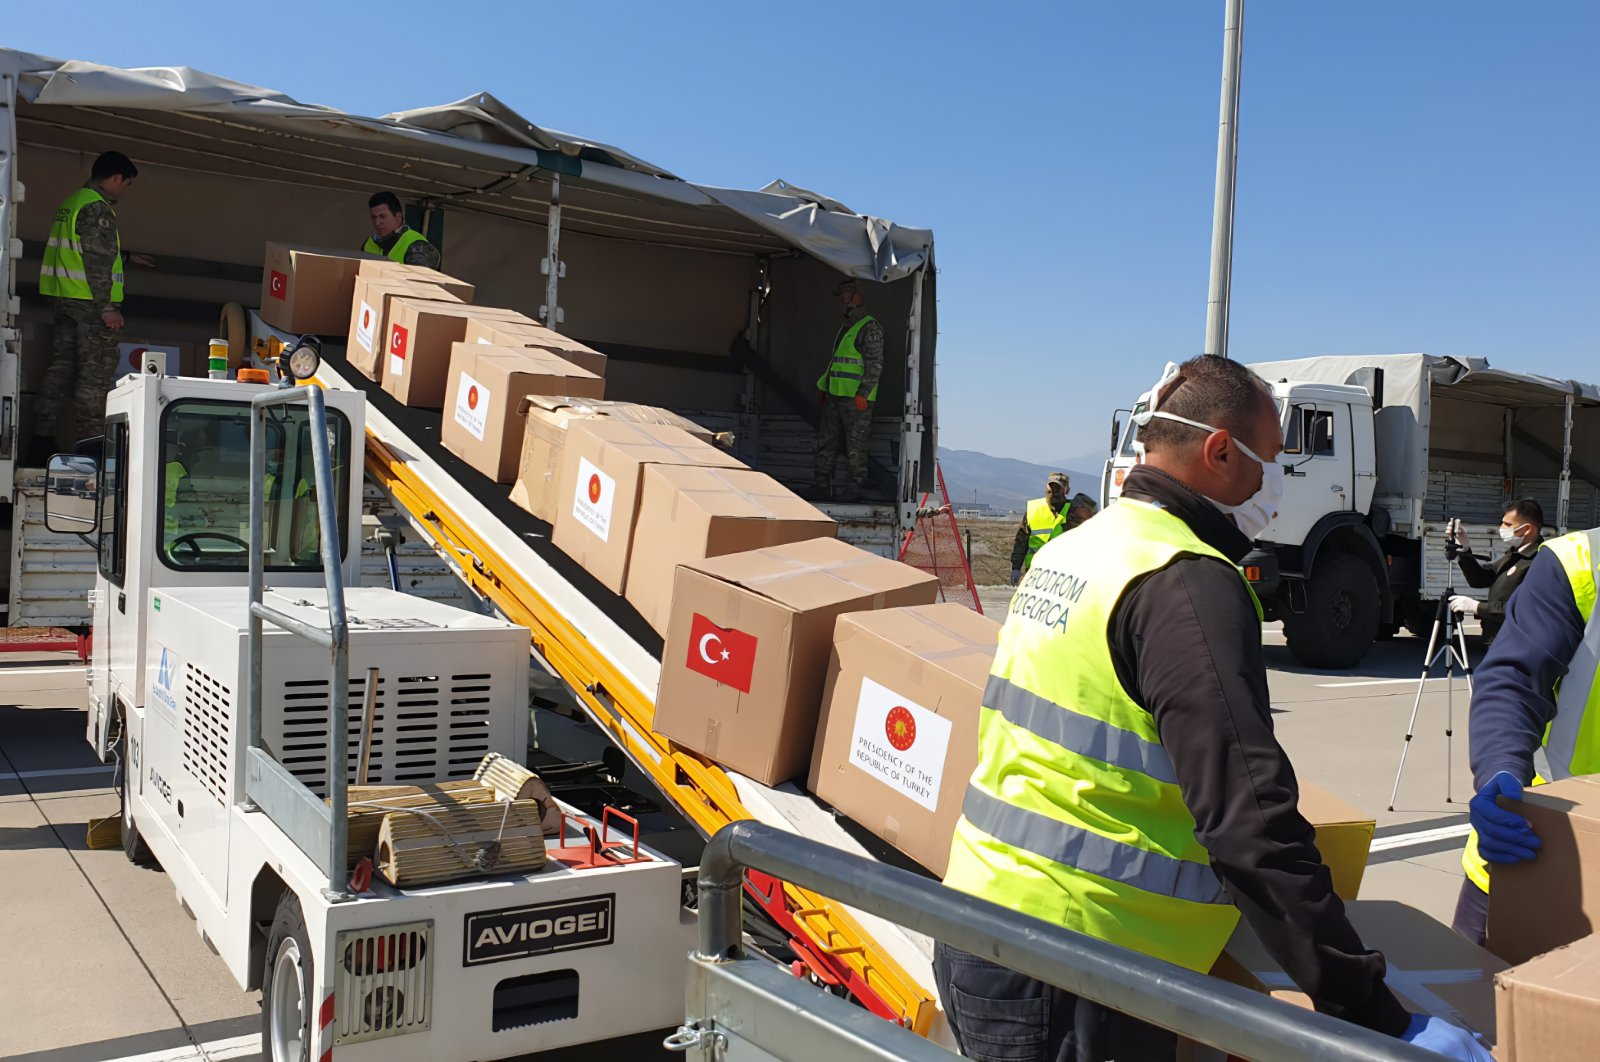 Serbian officials unload Personal Protection Equipment donated by Turkey to help the country combat the new coronavirus outbreak, in Belgrade, Serbia, Wednesday, April 8, 2020. (AP Photo)